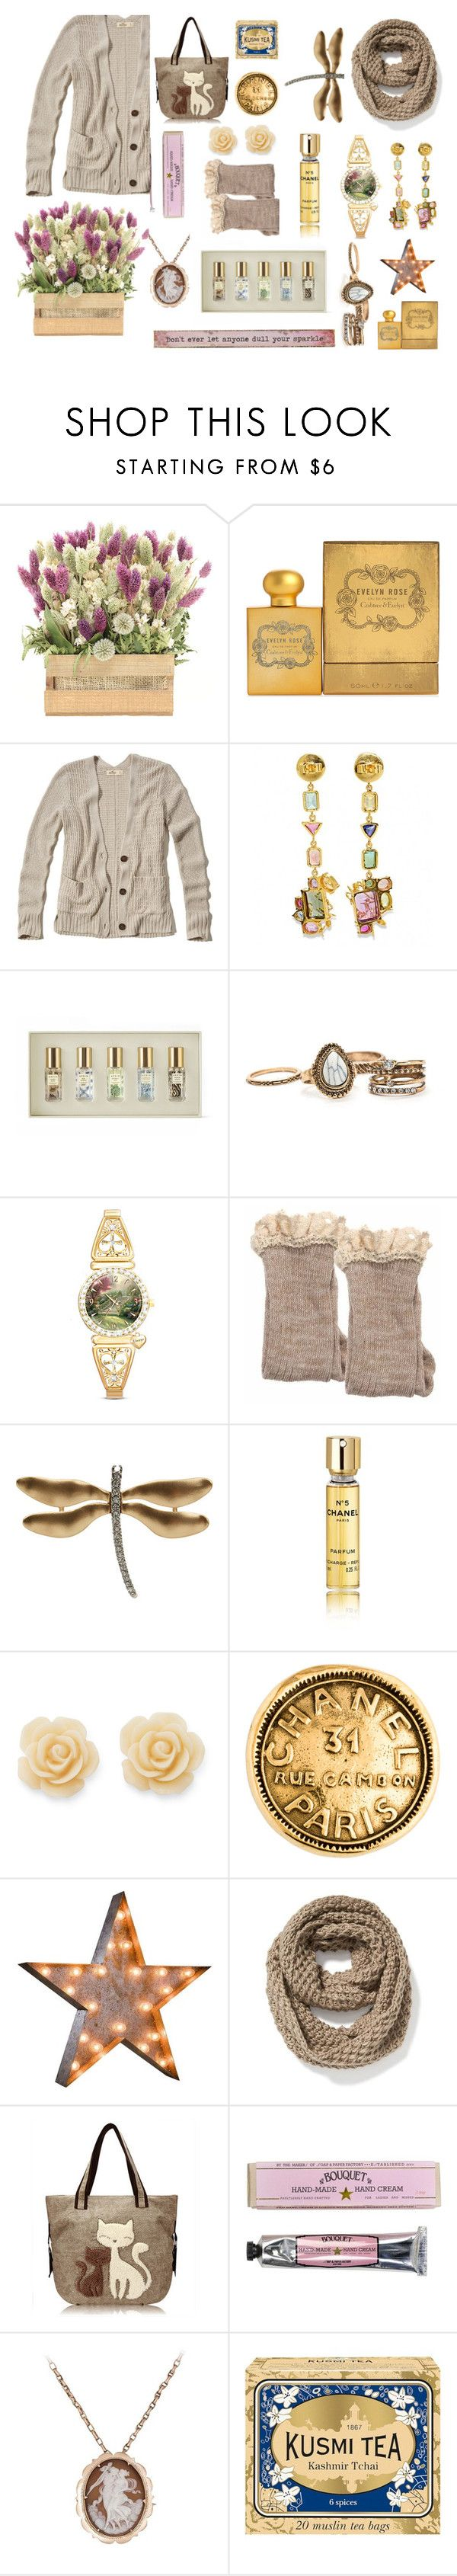 """""""soft and pretty"""" by lillybluemoon on Polyvore featuring Crabtree & Evelyn, Hollister Co., Daniela Villegas, AERIN, The Bradford Exchange, Kenneth Jay Lane, Chanel, Draper James, Old Navy and Soap & Paper Factory"""